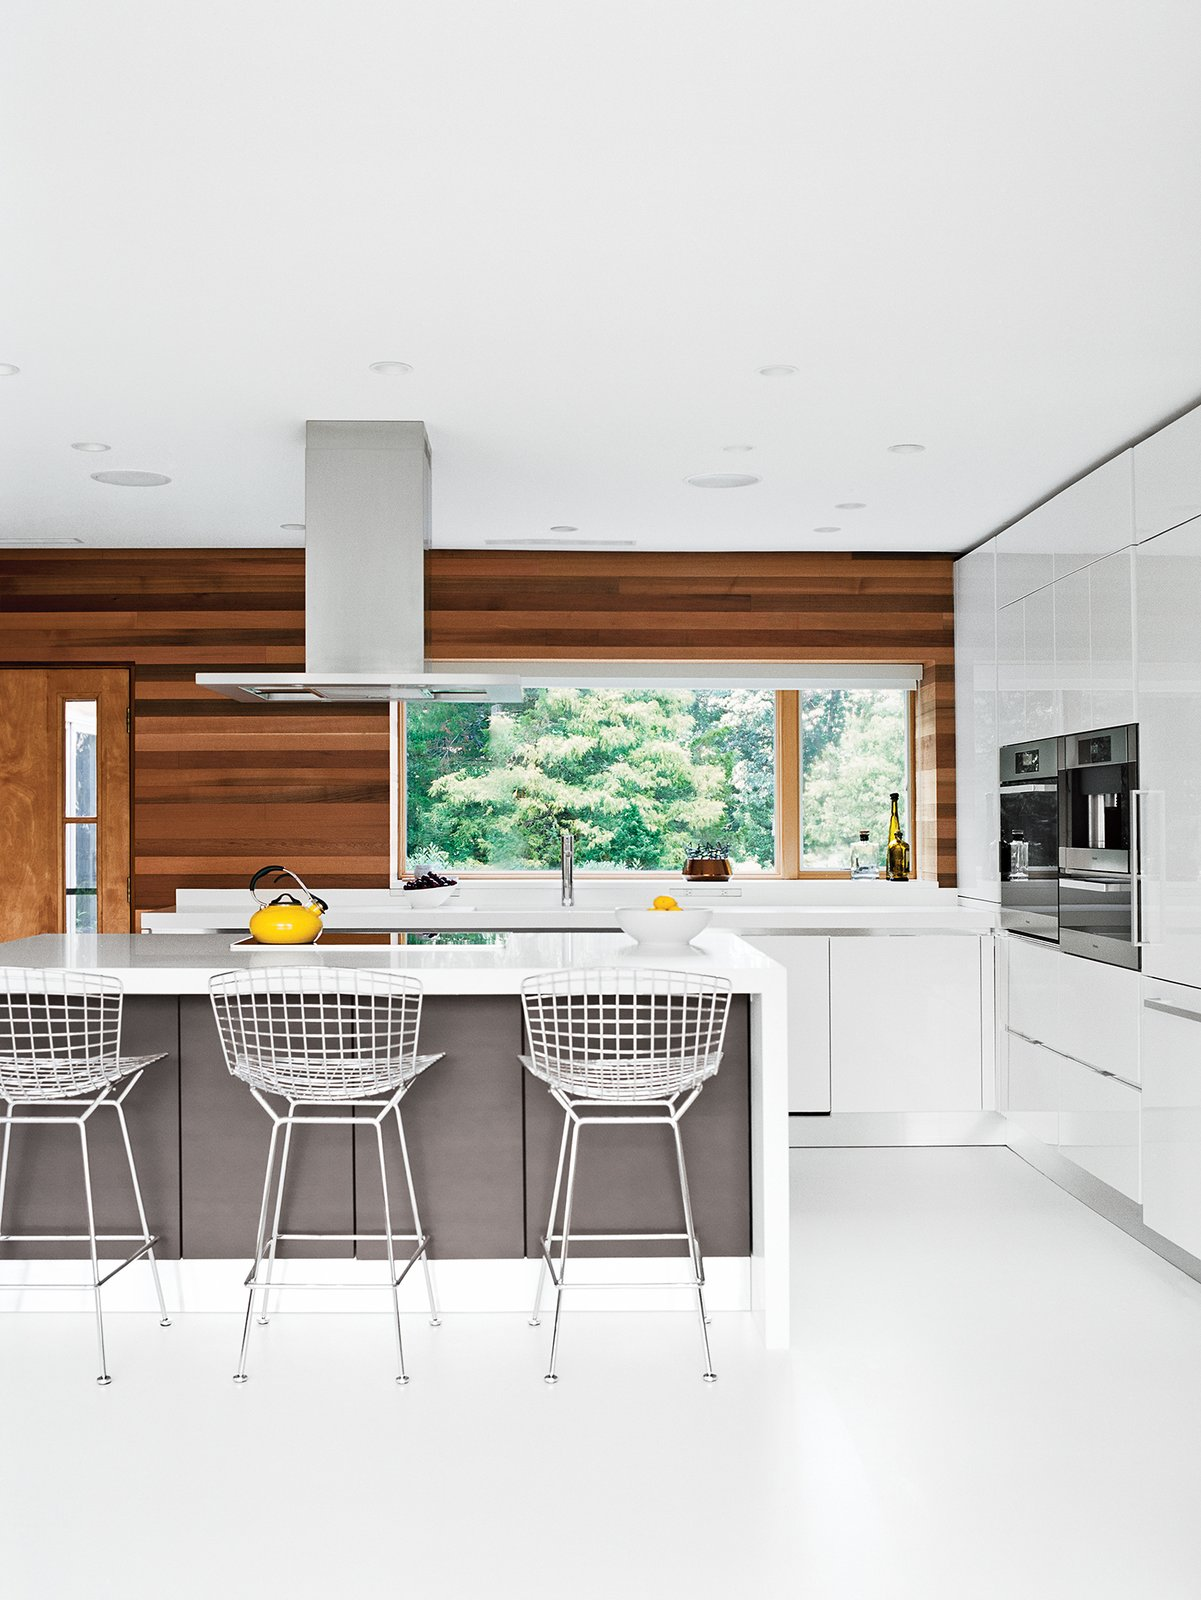 Bertoia bar stools by Knoll are tucked under the island in the Scavolini Scenery kitchen. Jordan replaced the original wood flooring with white resin, a robust surface used in high-traffic environments.  Photo 5 of 12 in The Midcentury Spirit is Alive and Well in This Hudson Valley Escape